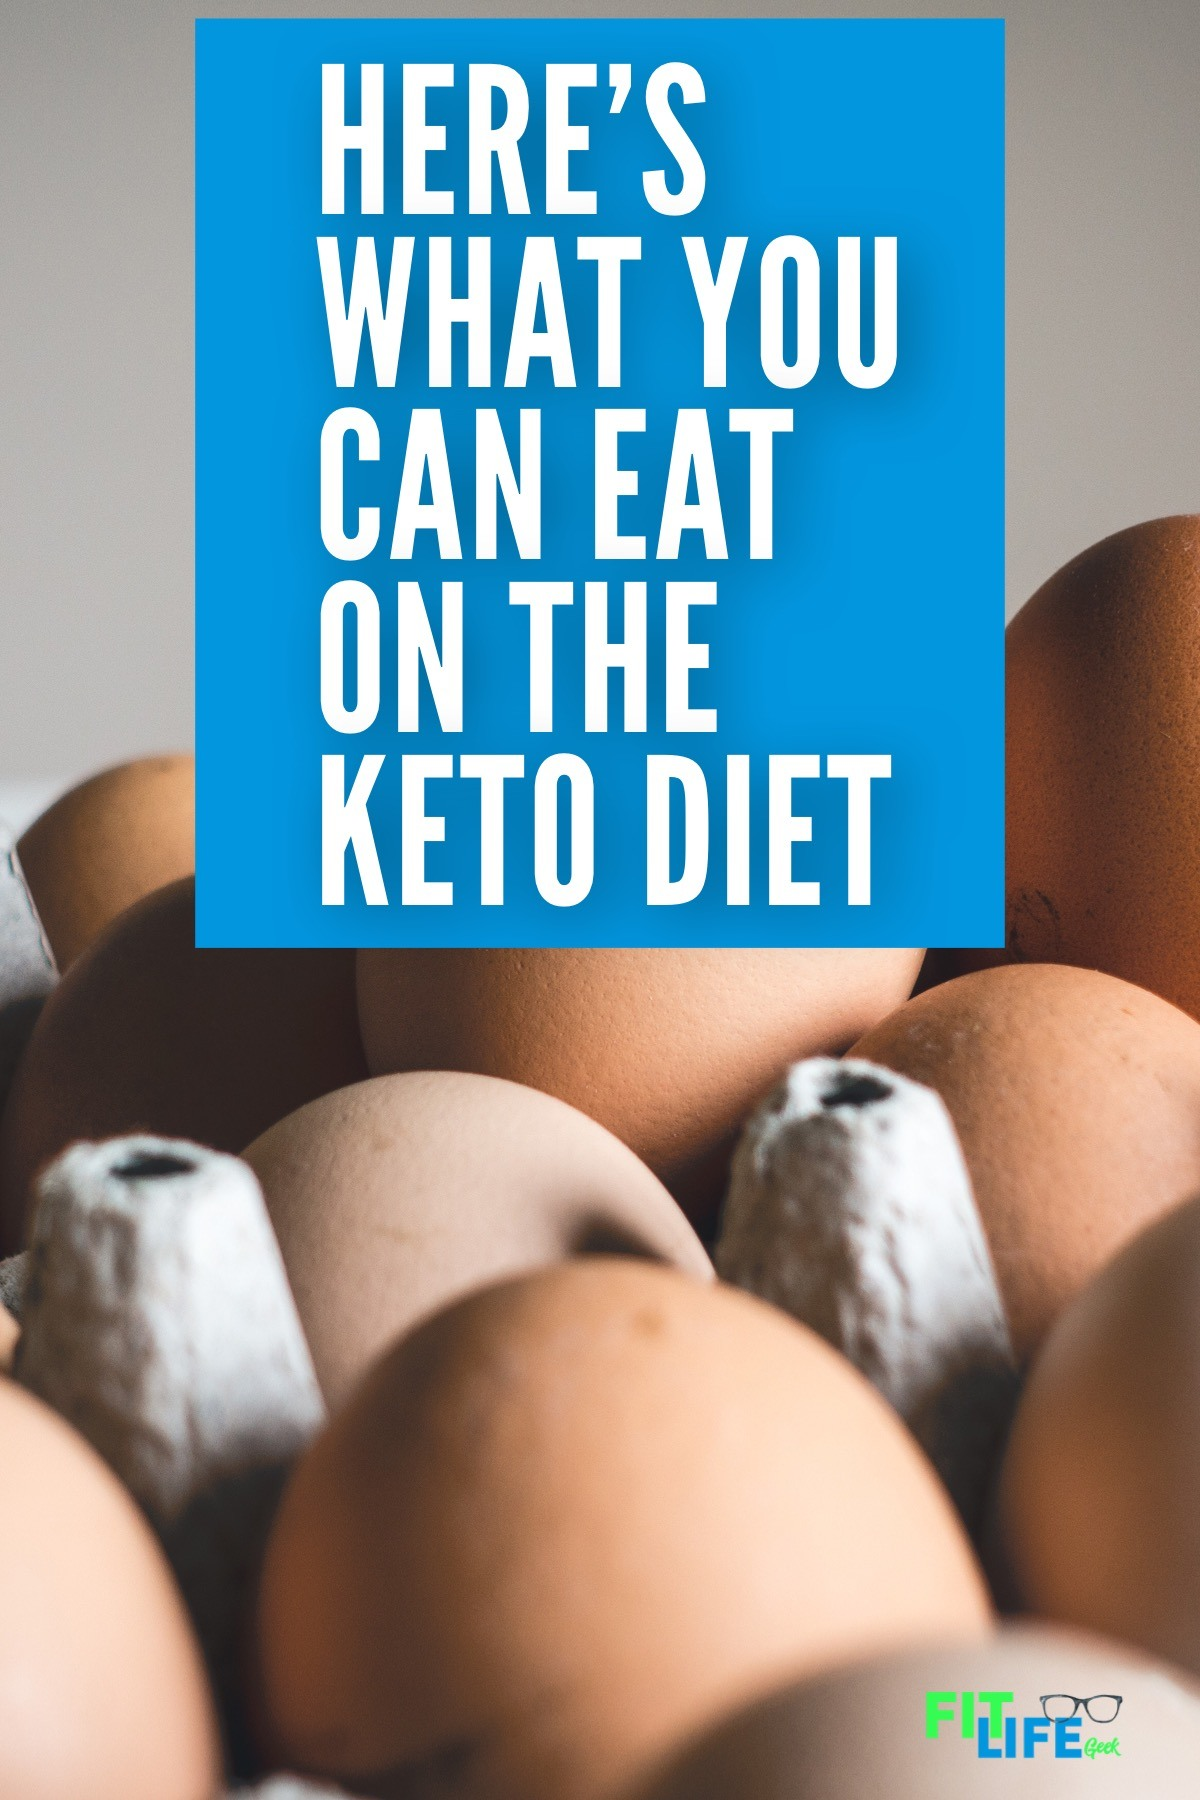 What can I eat on the keto diet?